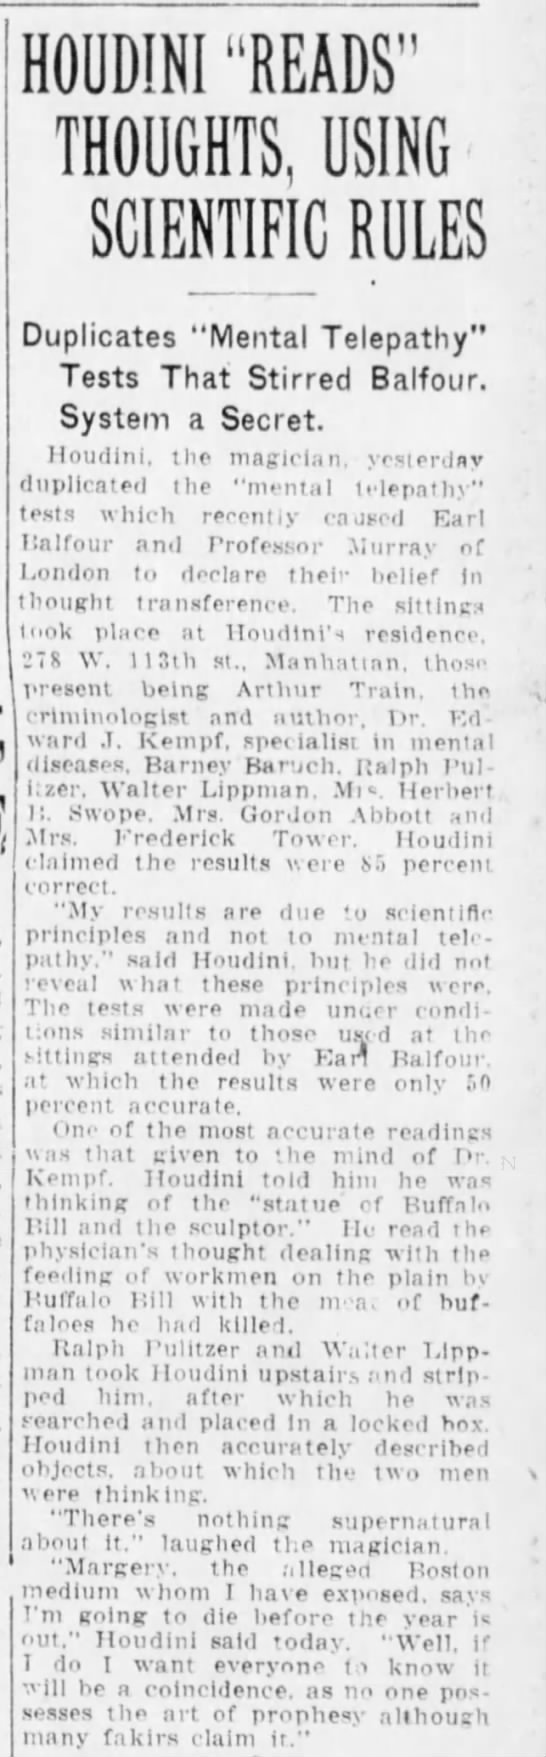 Houdini reads thoughts Balfour Murray Brooklyn Daily Eagle Feb 9 1925 -